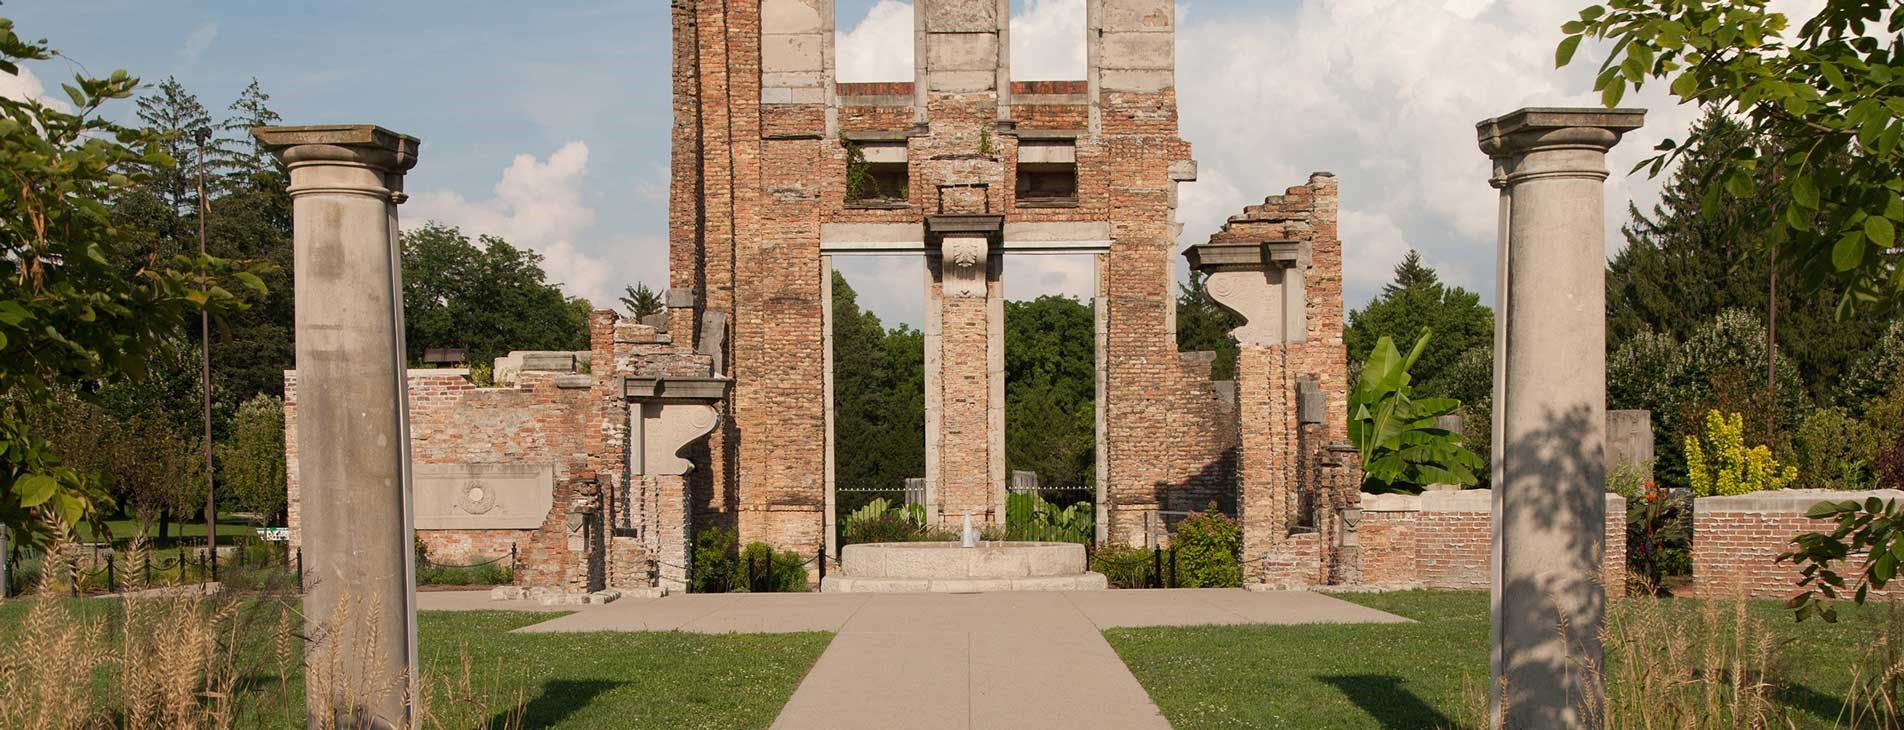 Holliday Park Can Host Any Type of Event in Indianapolis, Indiana